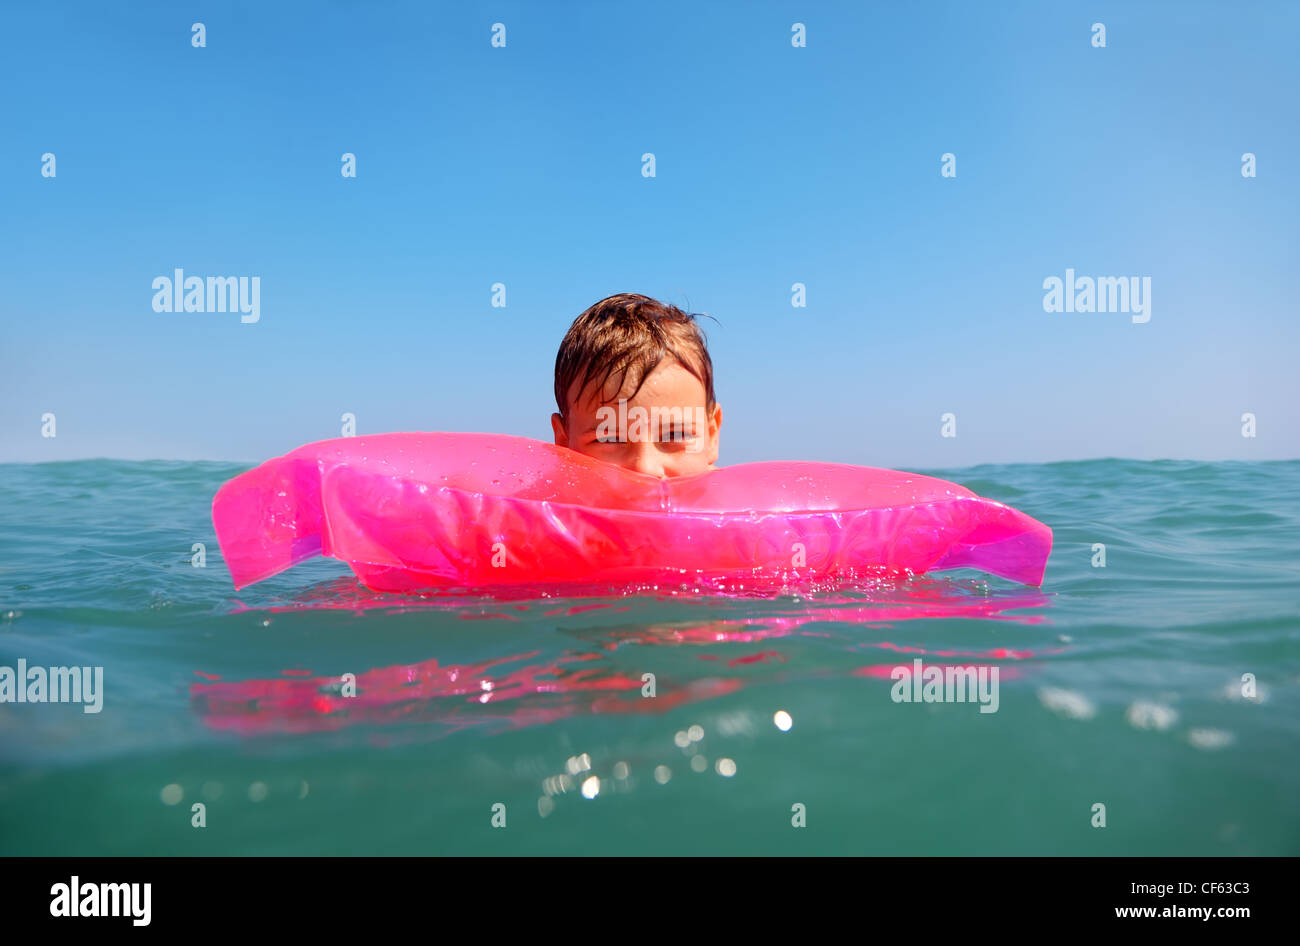 The little boy floating in sea on inflatable pink matrese. shot from underwater box, water on box blurry - Stock Image